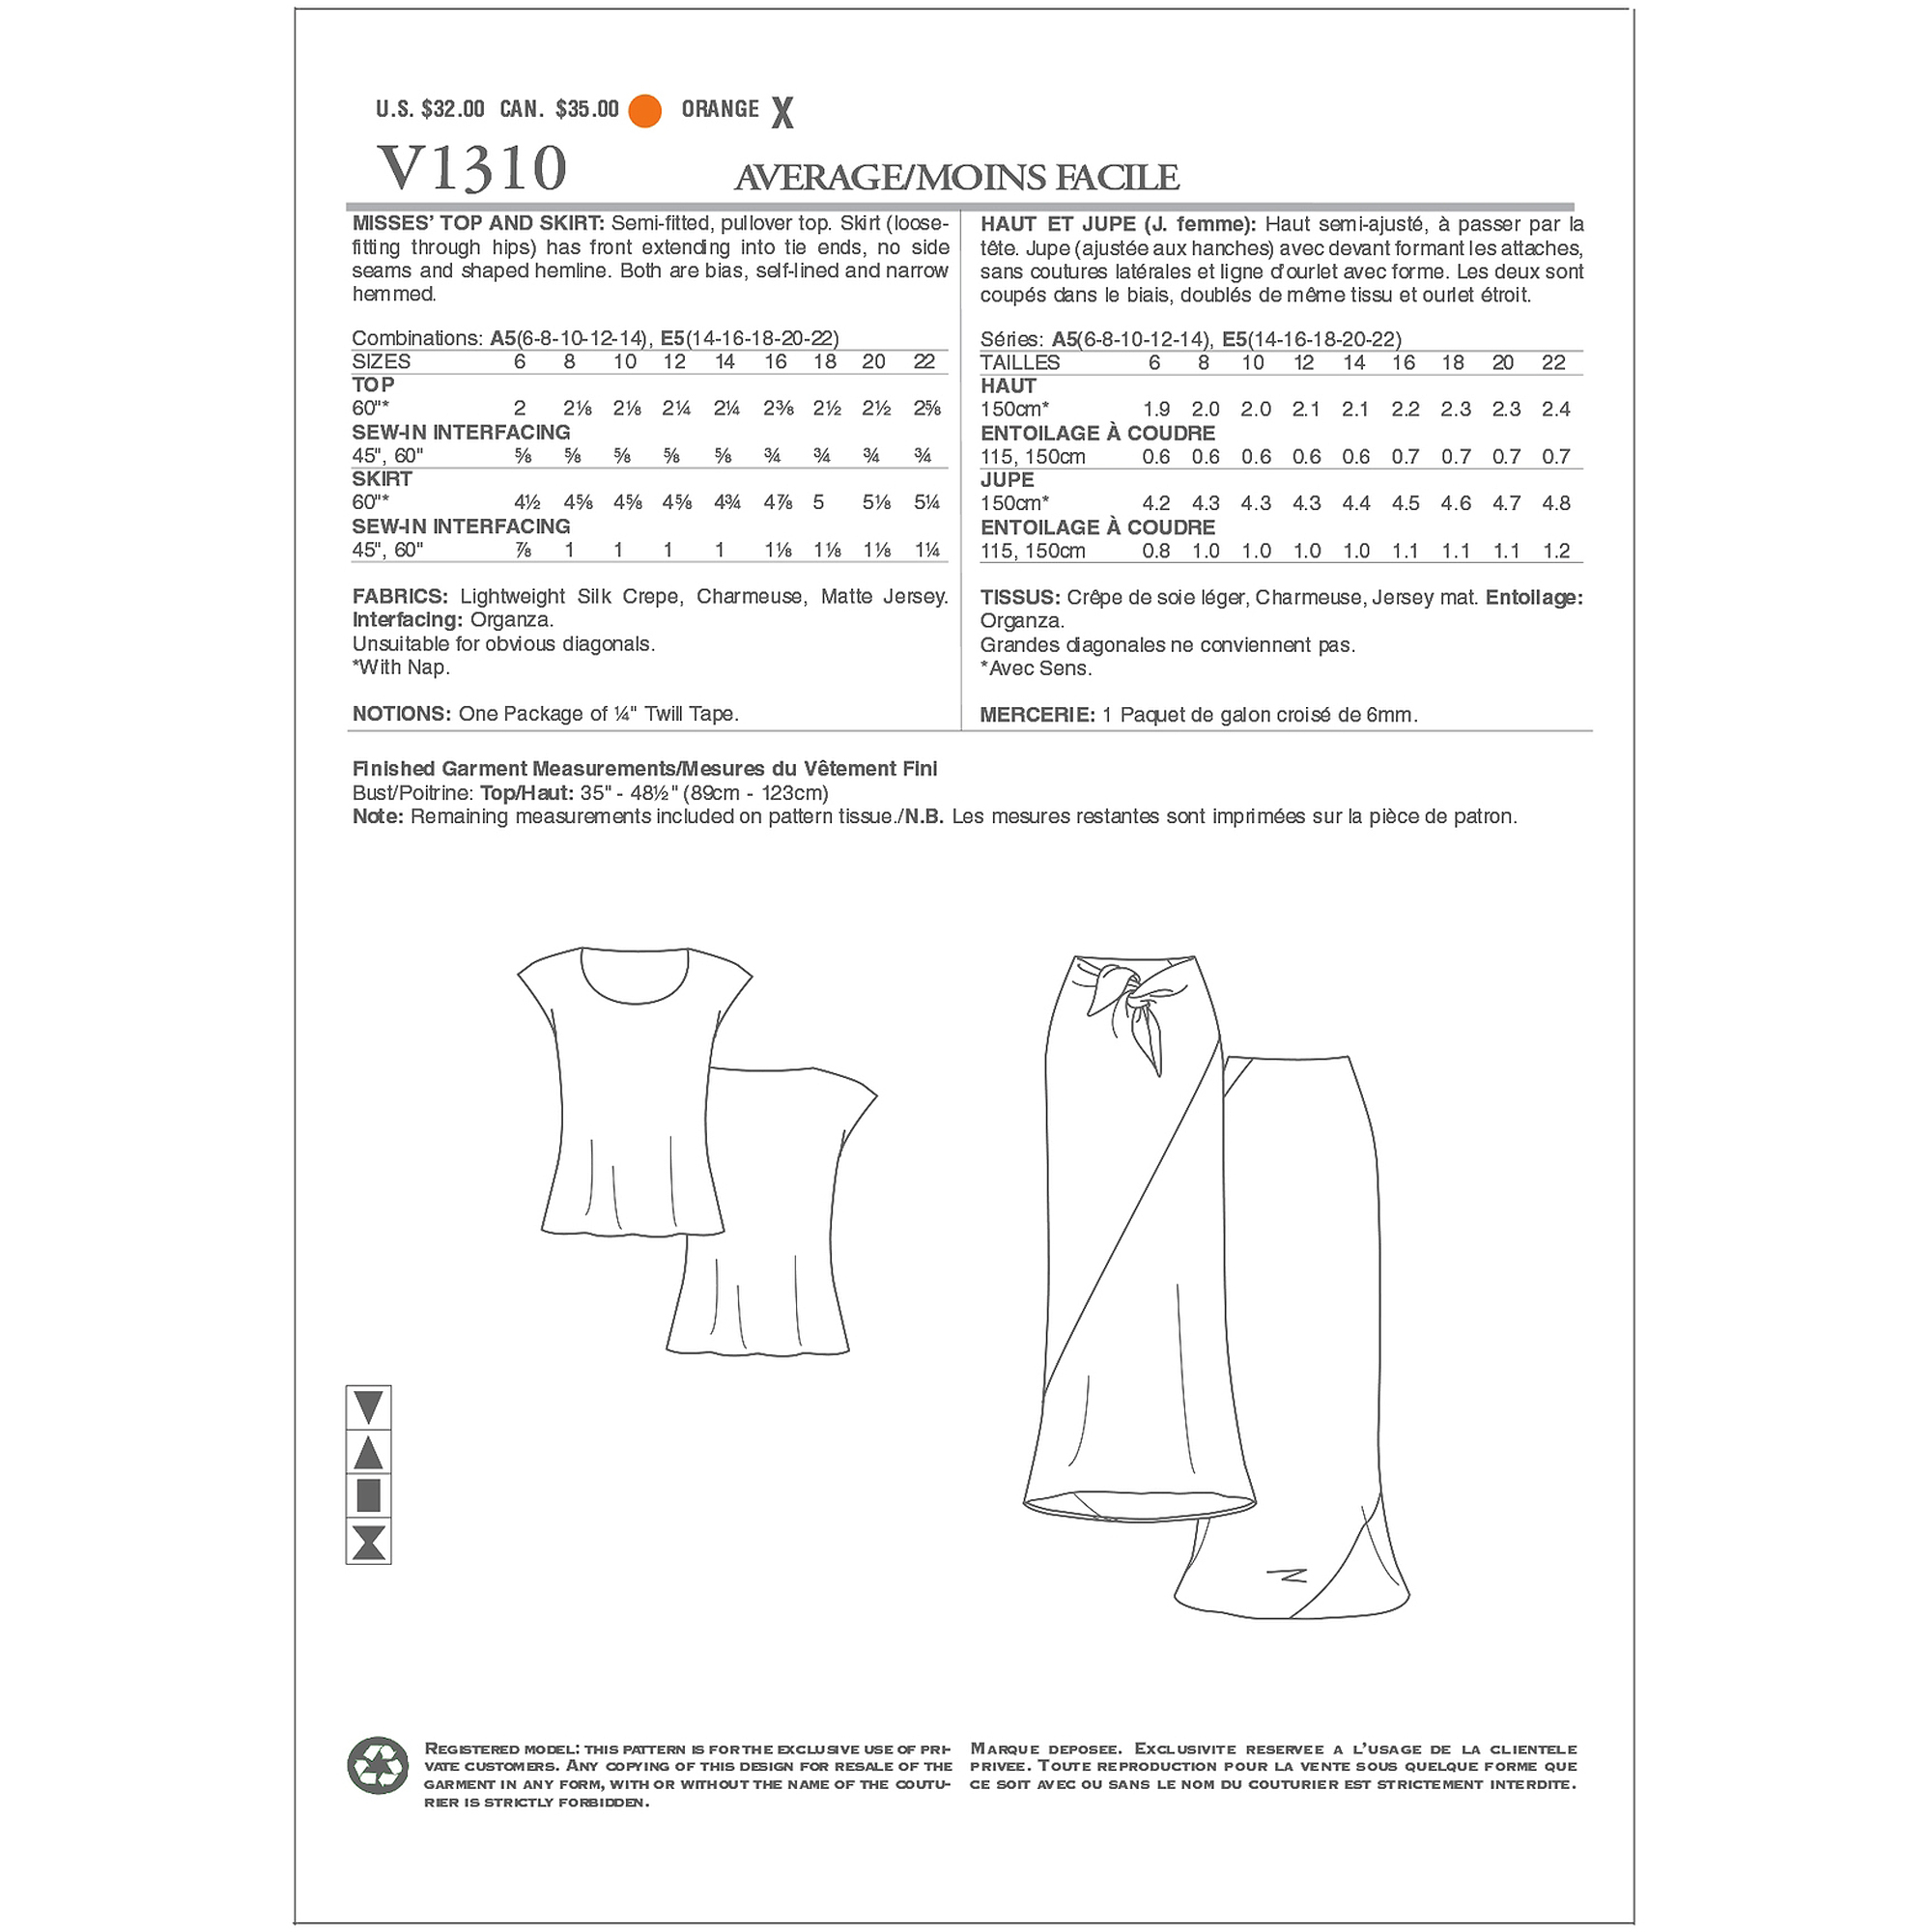 Vogue Pattern Misses' Top and Skirt, A5 (6, 8, 10, 12, 14)